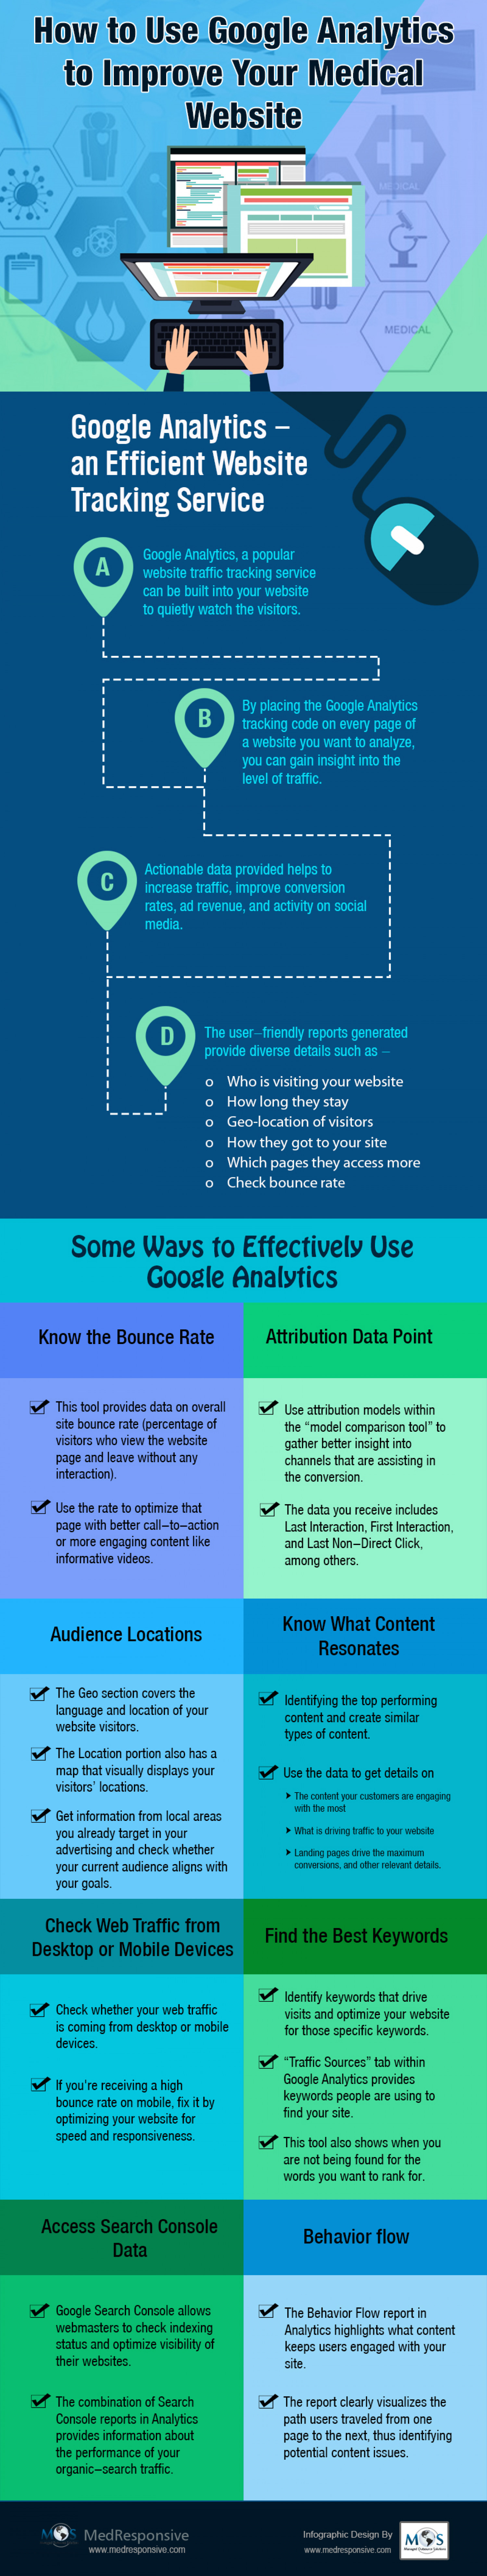 How to Use Google Analytics to Improve Your Medical Website Infographic